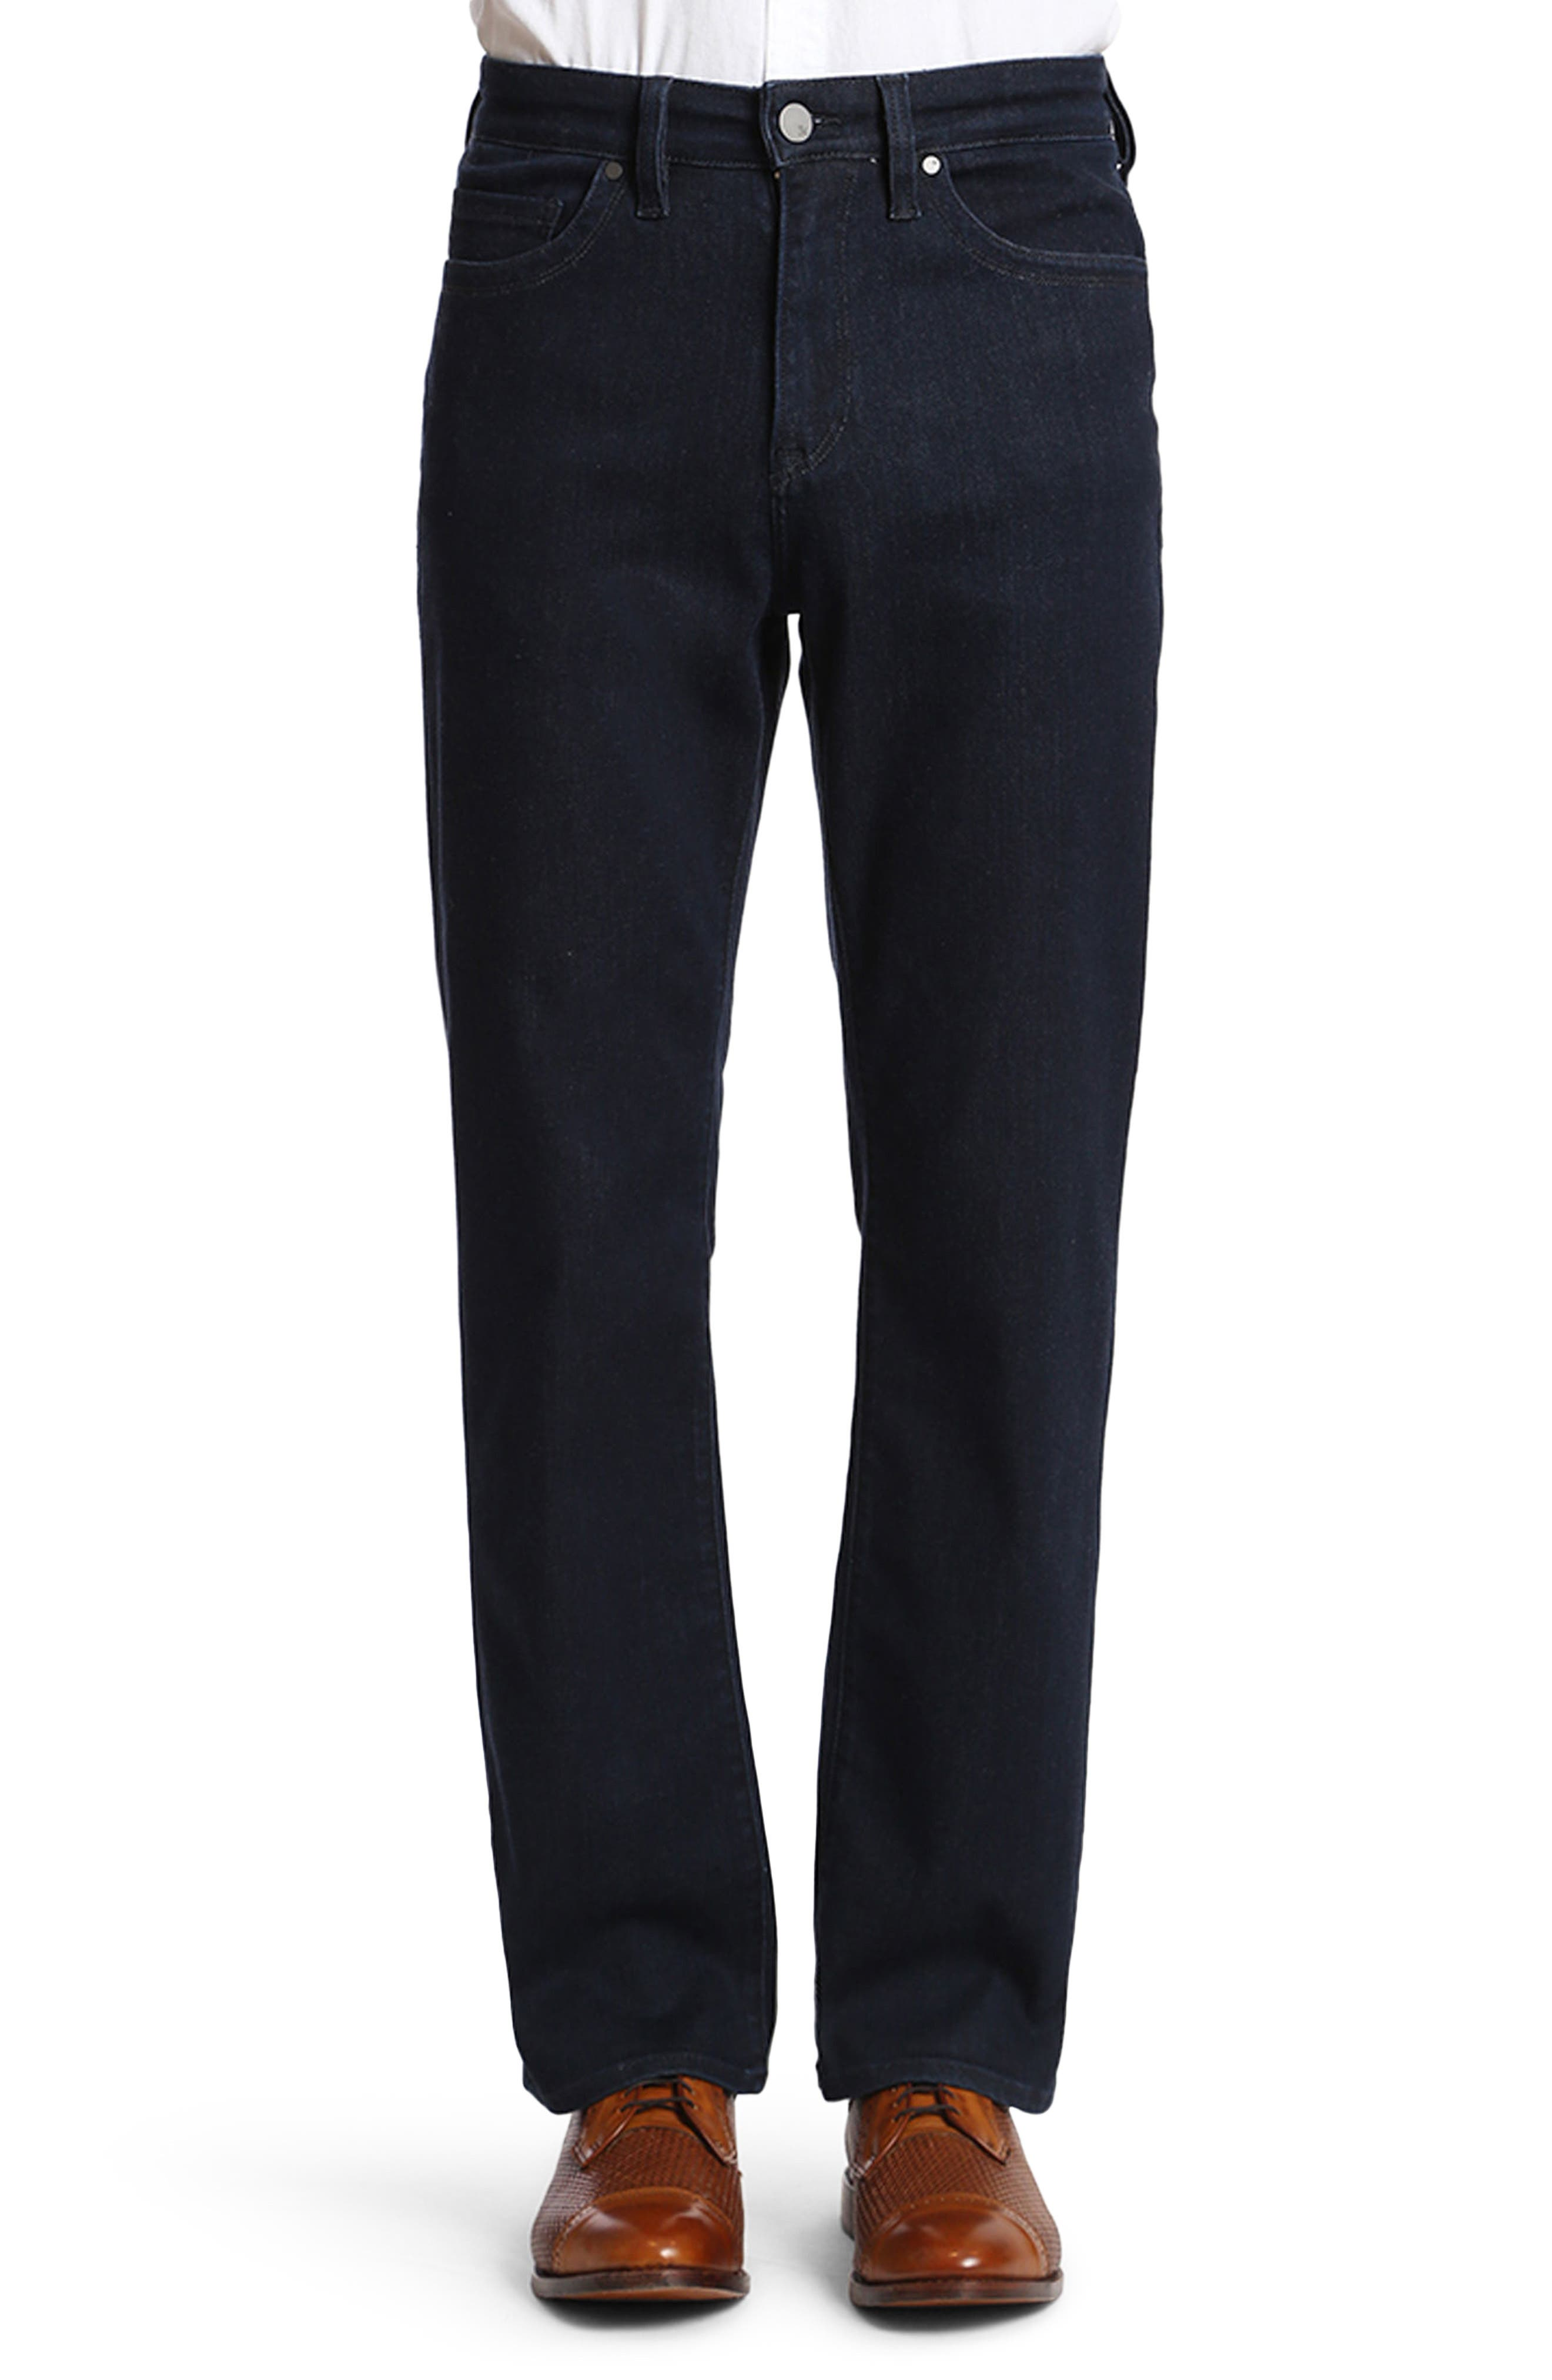 34 Heritage Charisma Relaxed Fit Jeans (Rinse Rome)